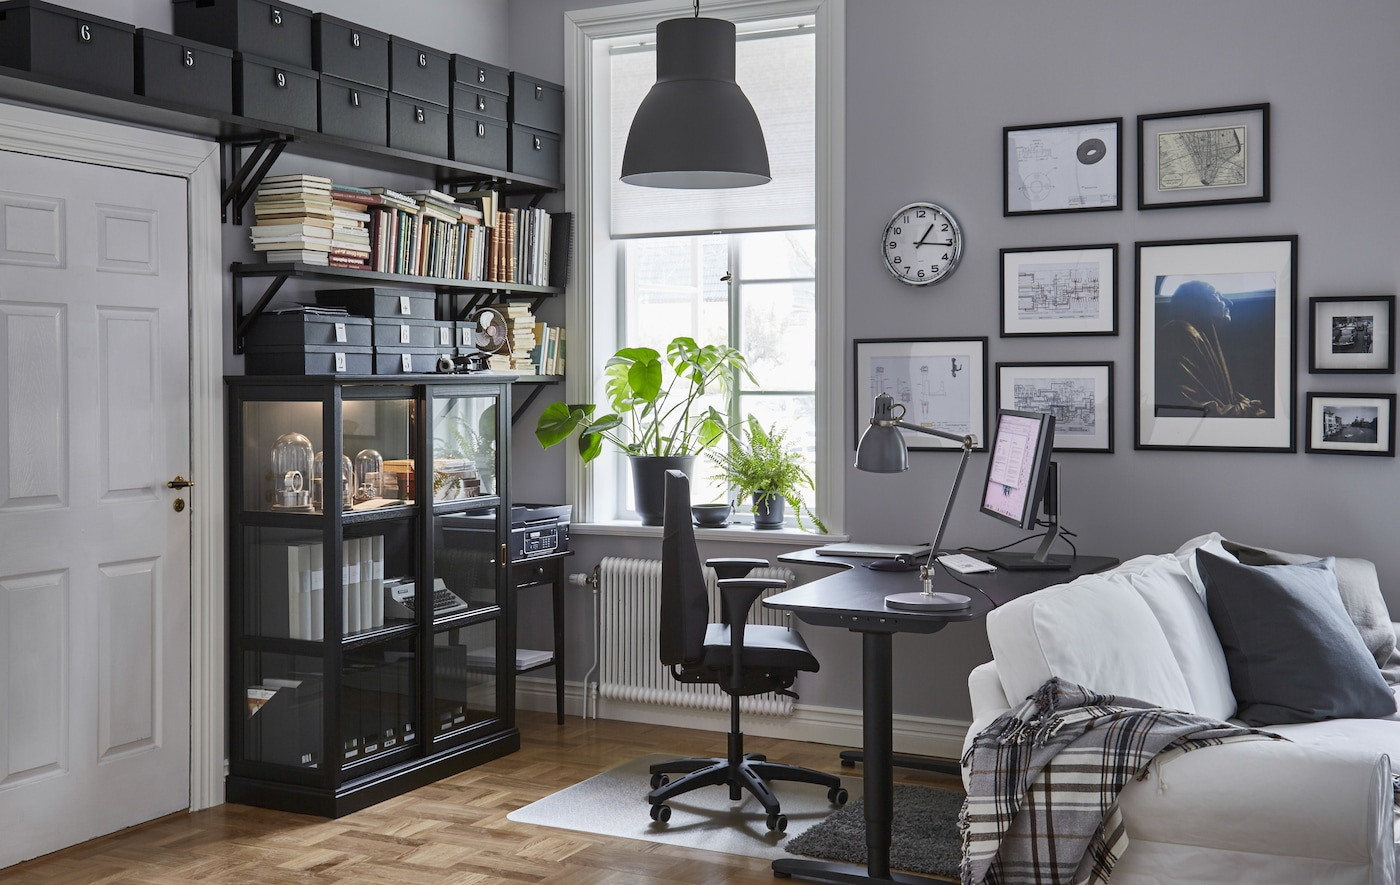 A home office that's ergonomically designed. Includes an adjustable desk, office chair, storage shelves, and plants.